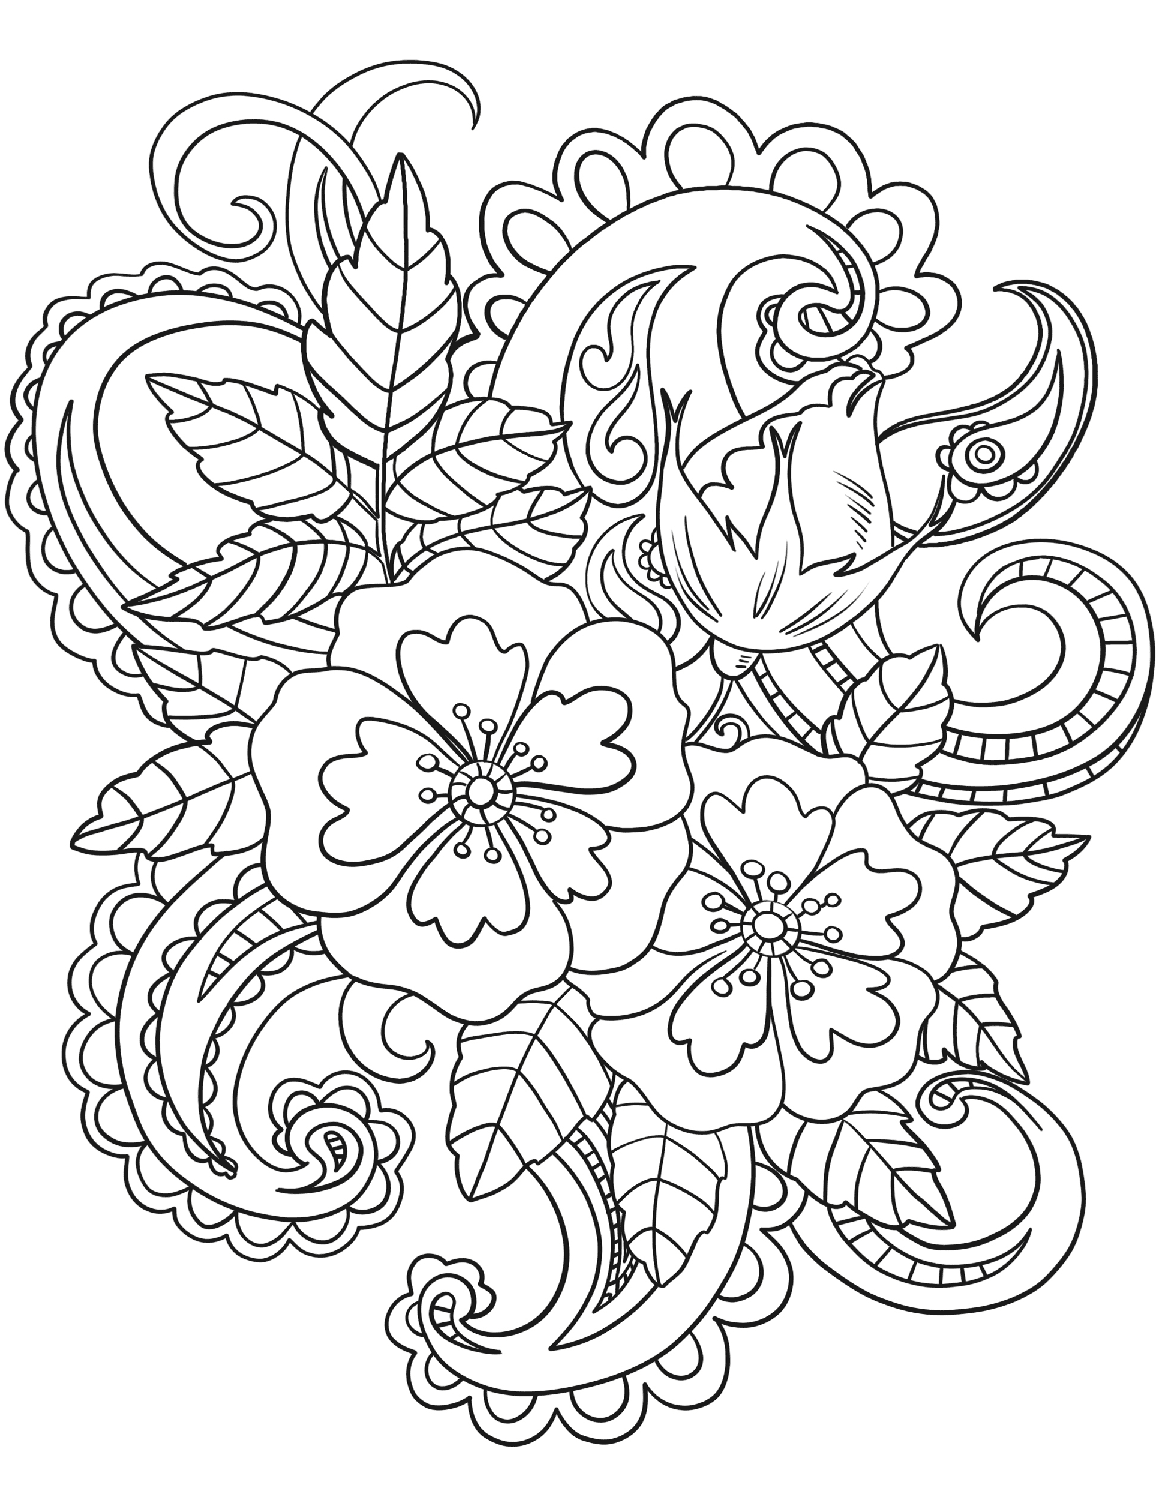 coloring patterns pages free printable zentangle patterns instructions newratemy coloring patterns pages